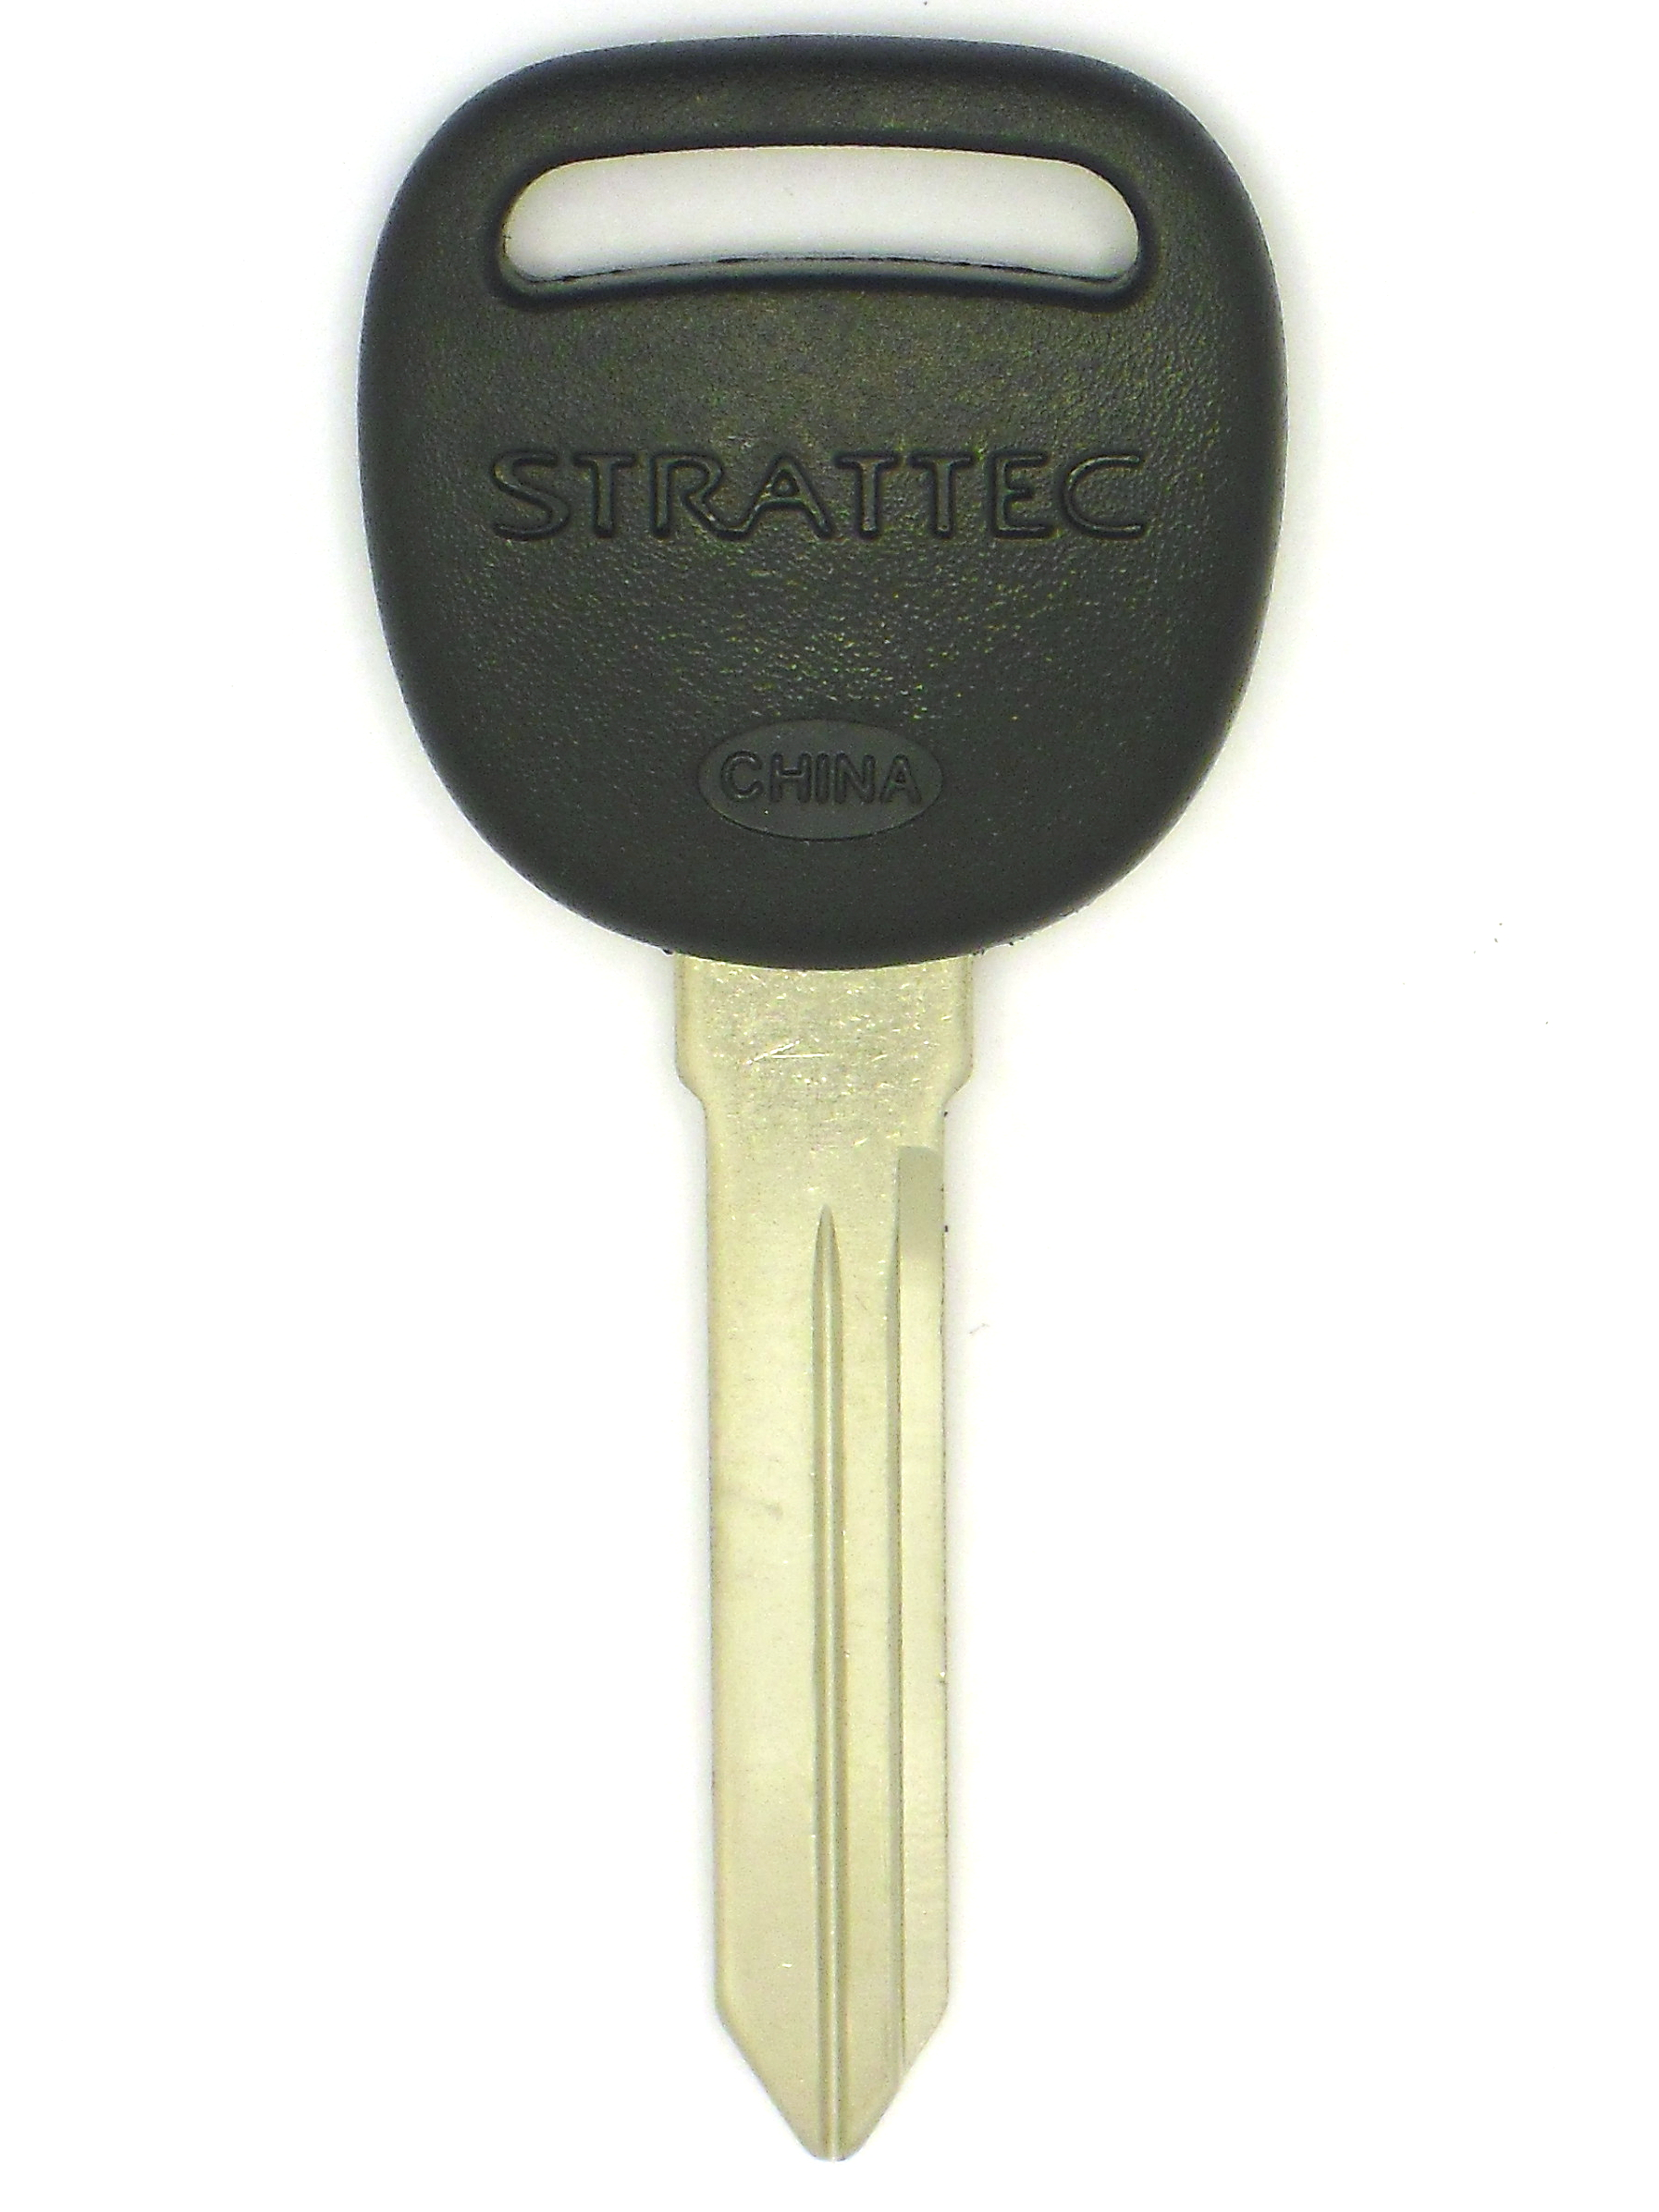 GM Non-Transponder Key